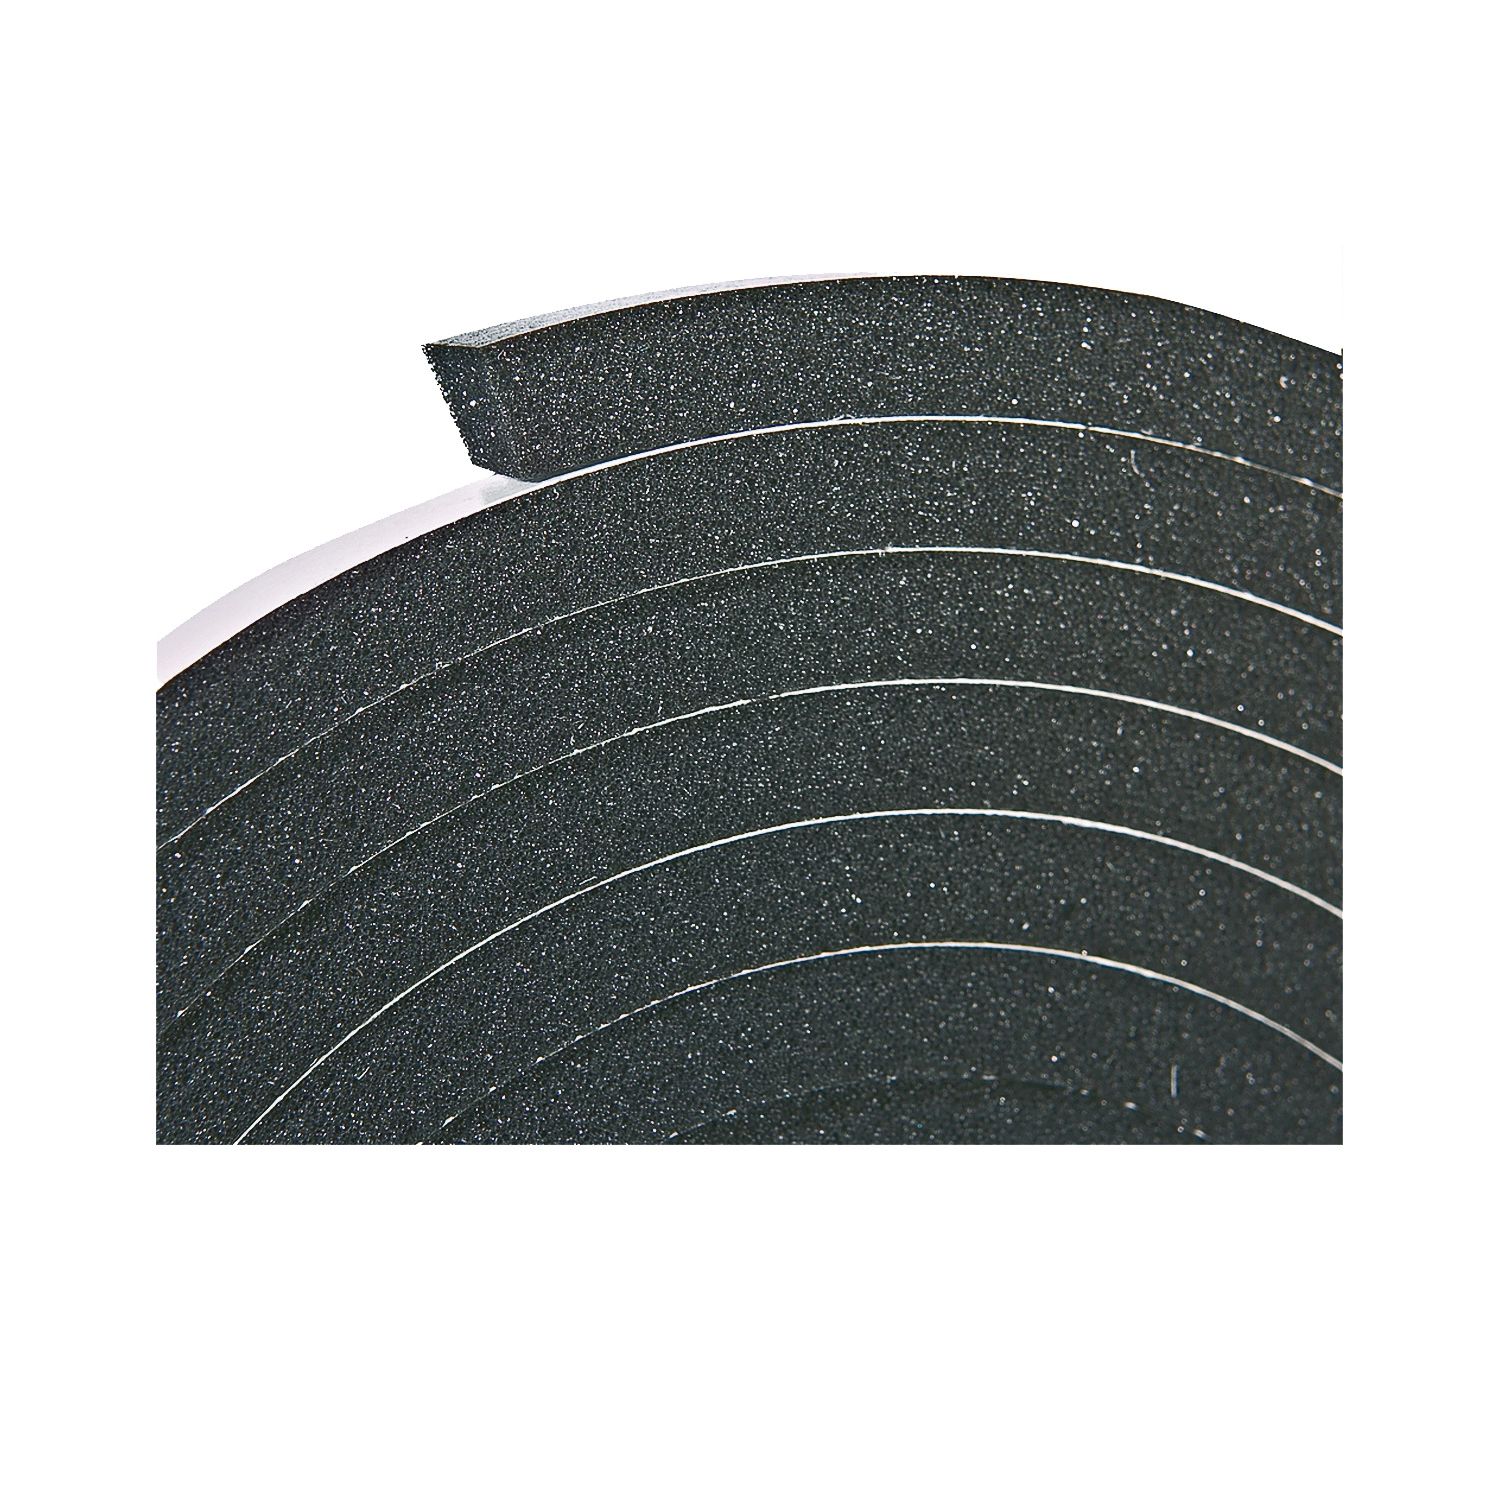 Picture of Frost King R538H Foam Tape, 3/8 in W, 10 ft L, 5/16 in Thick, Rubber, Black